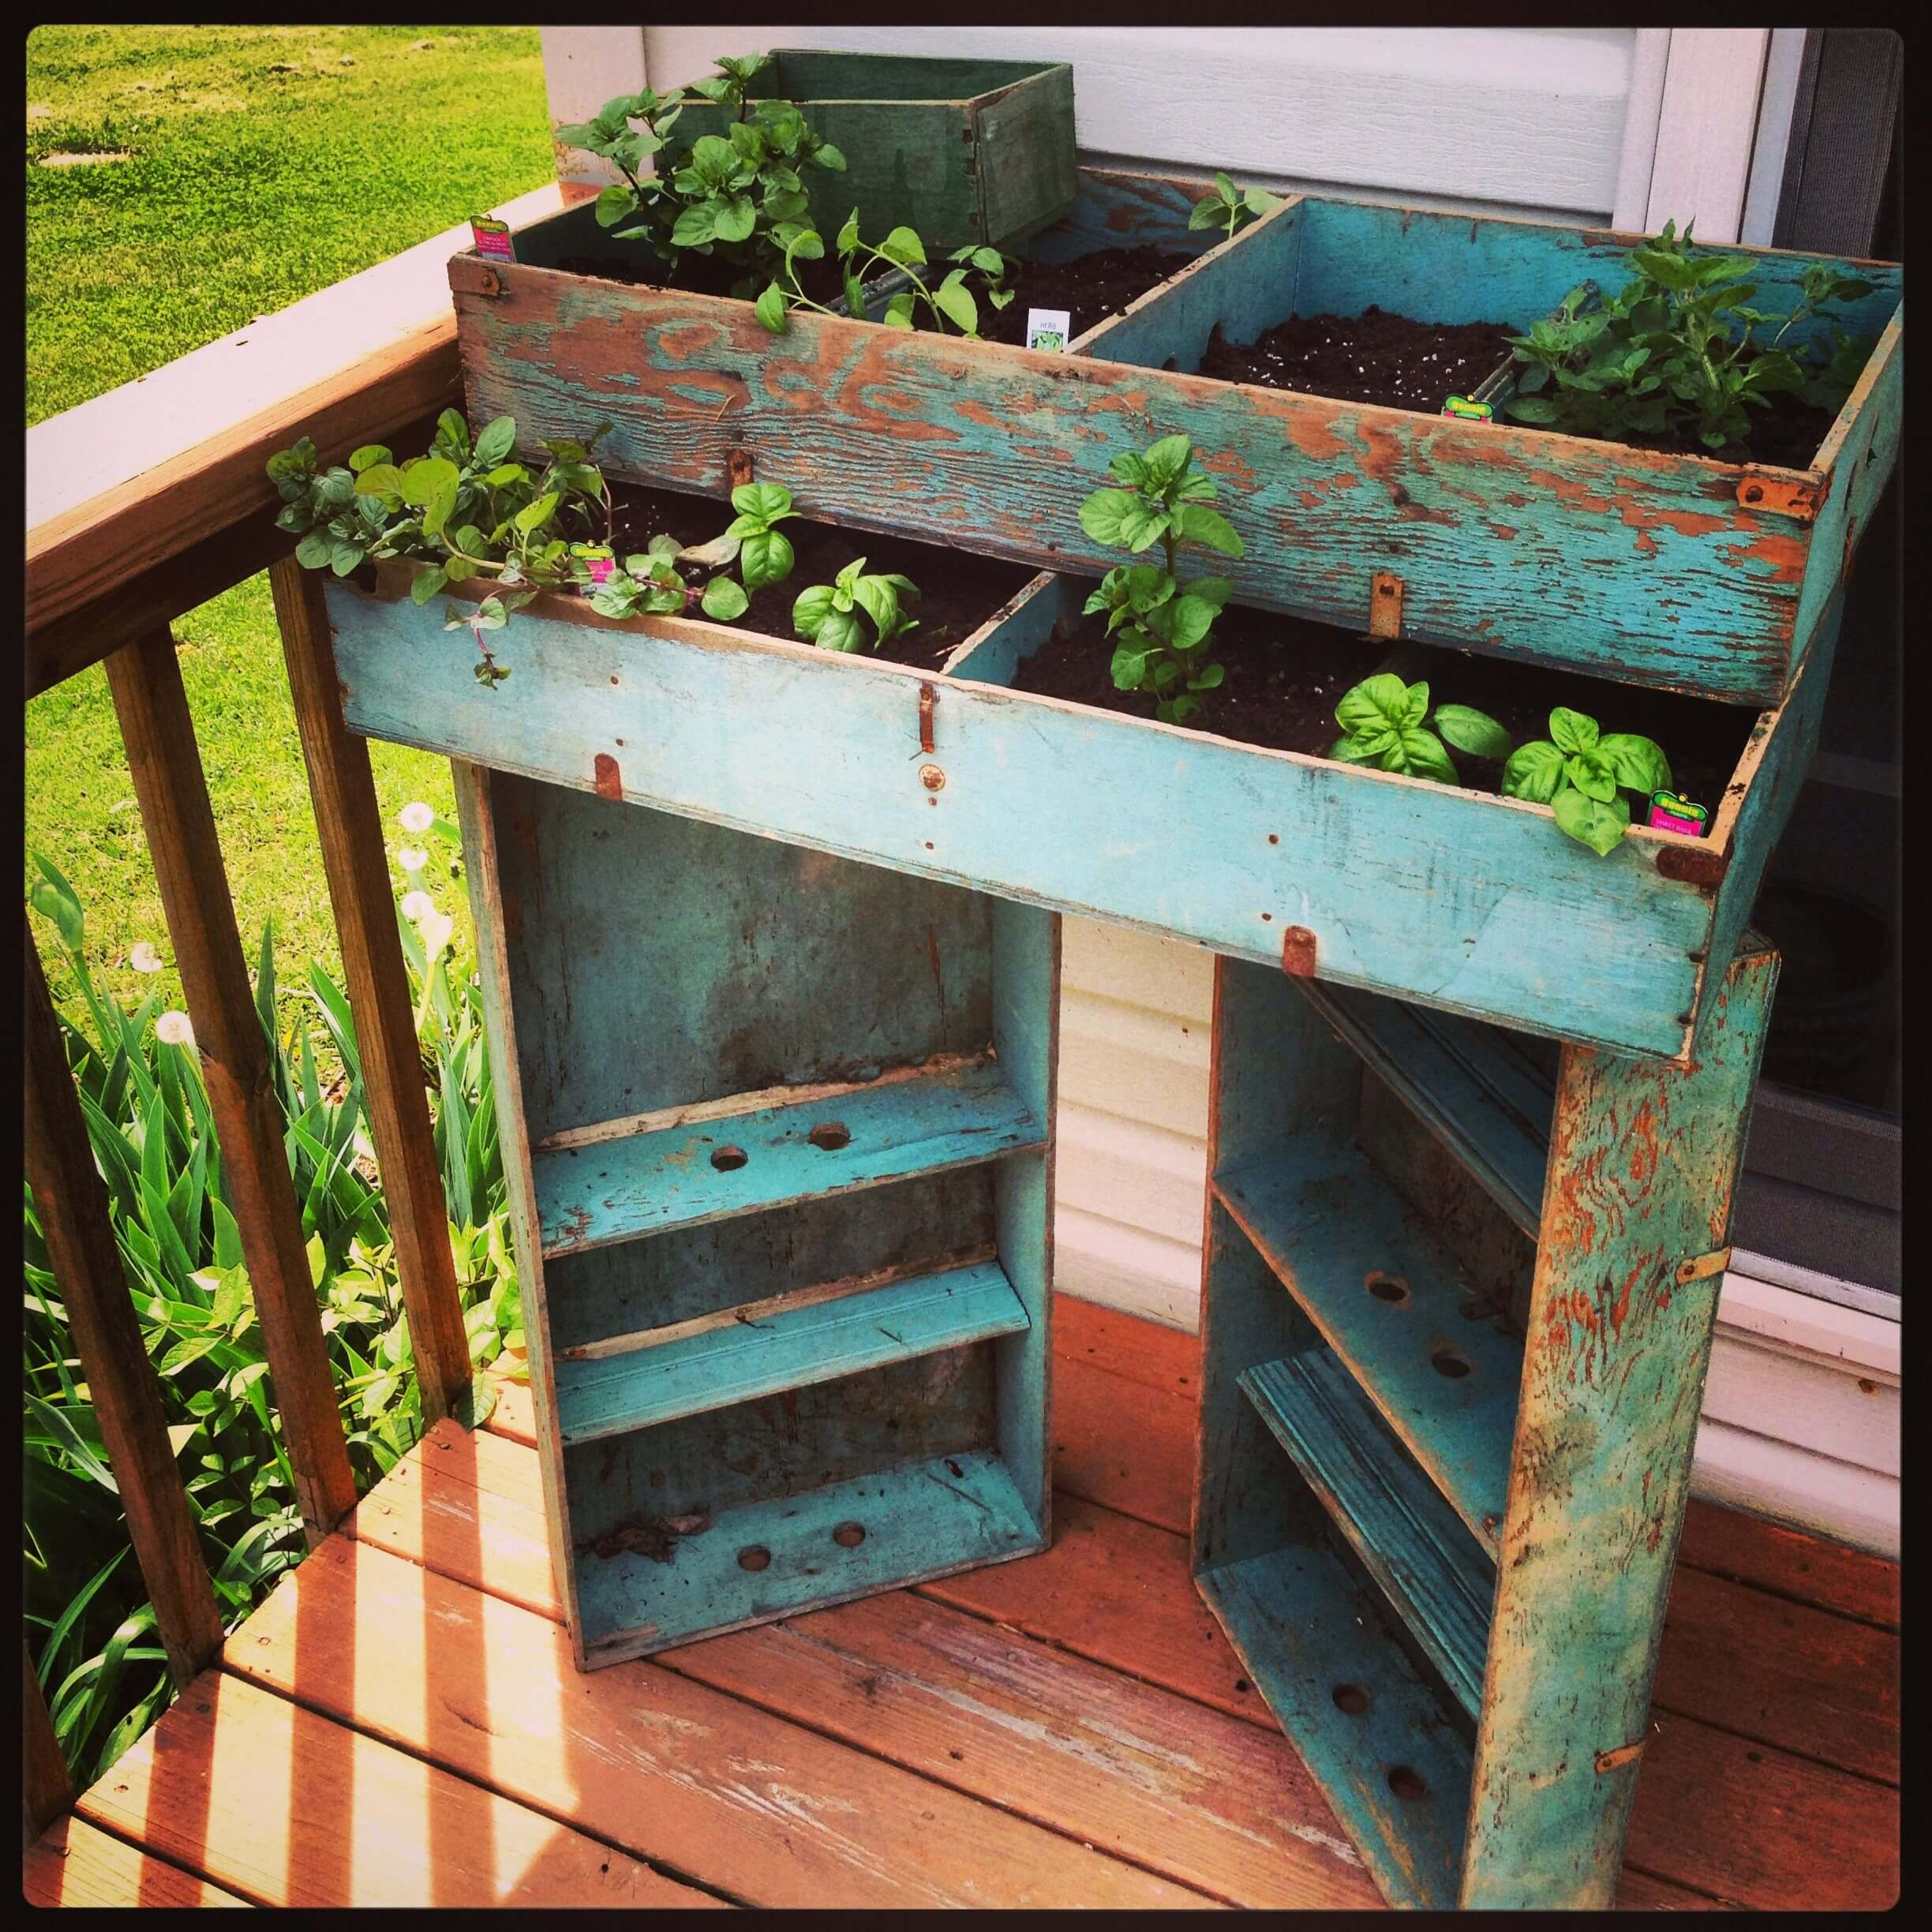 Growing Herbs In Small Spaces: 31+ Creative Herb Container